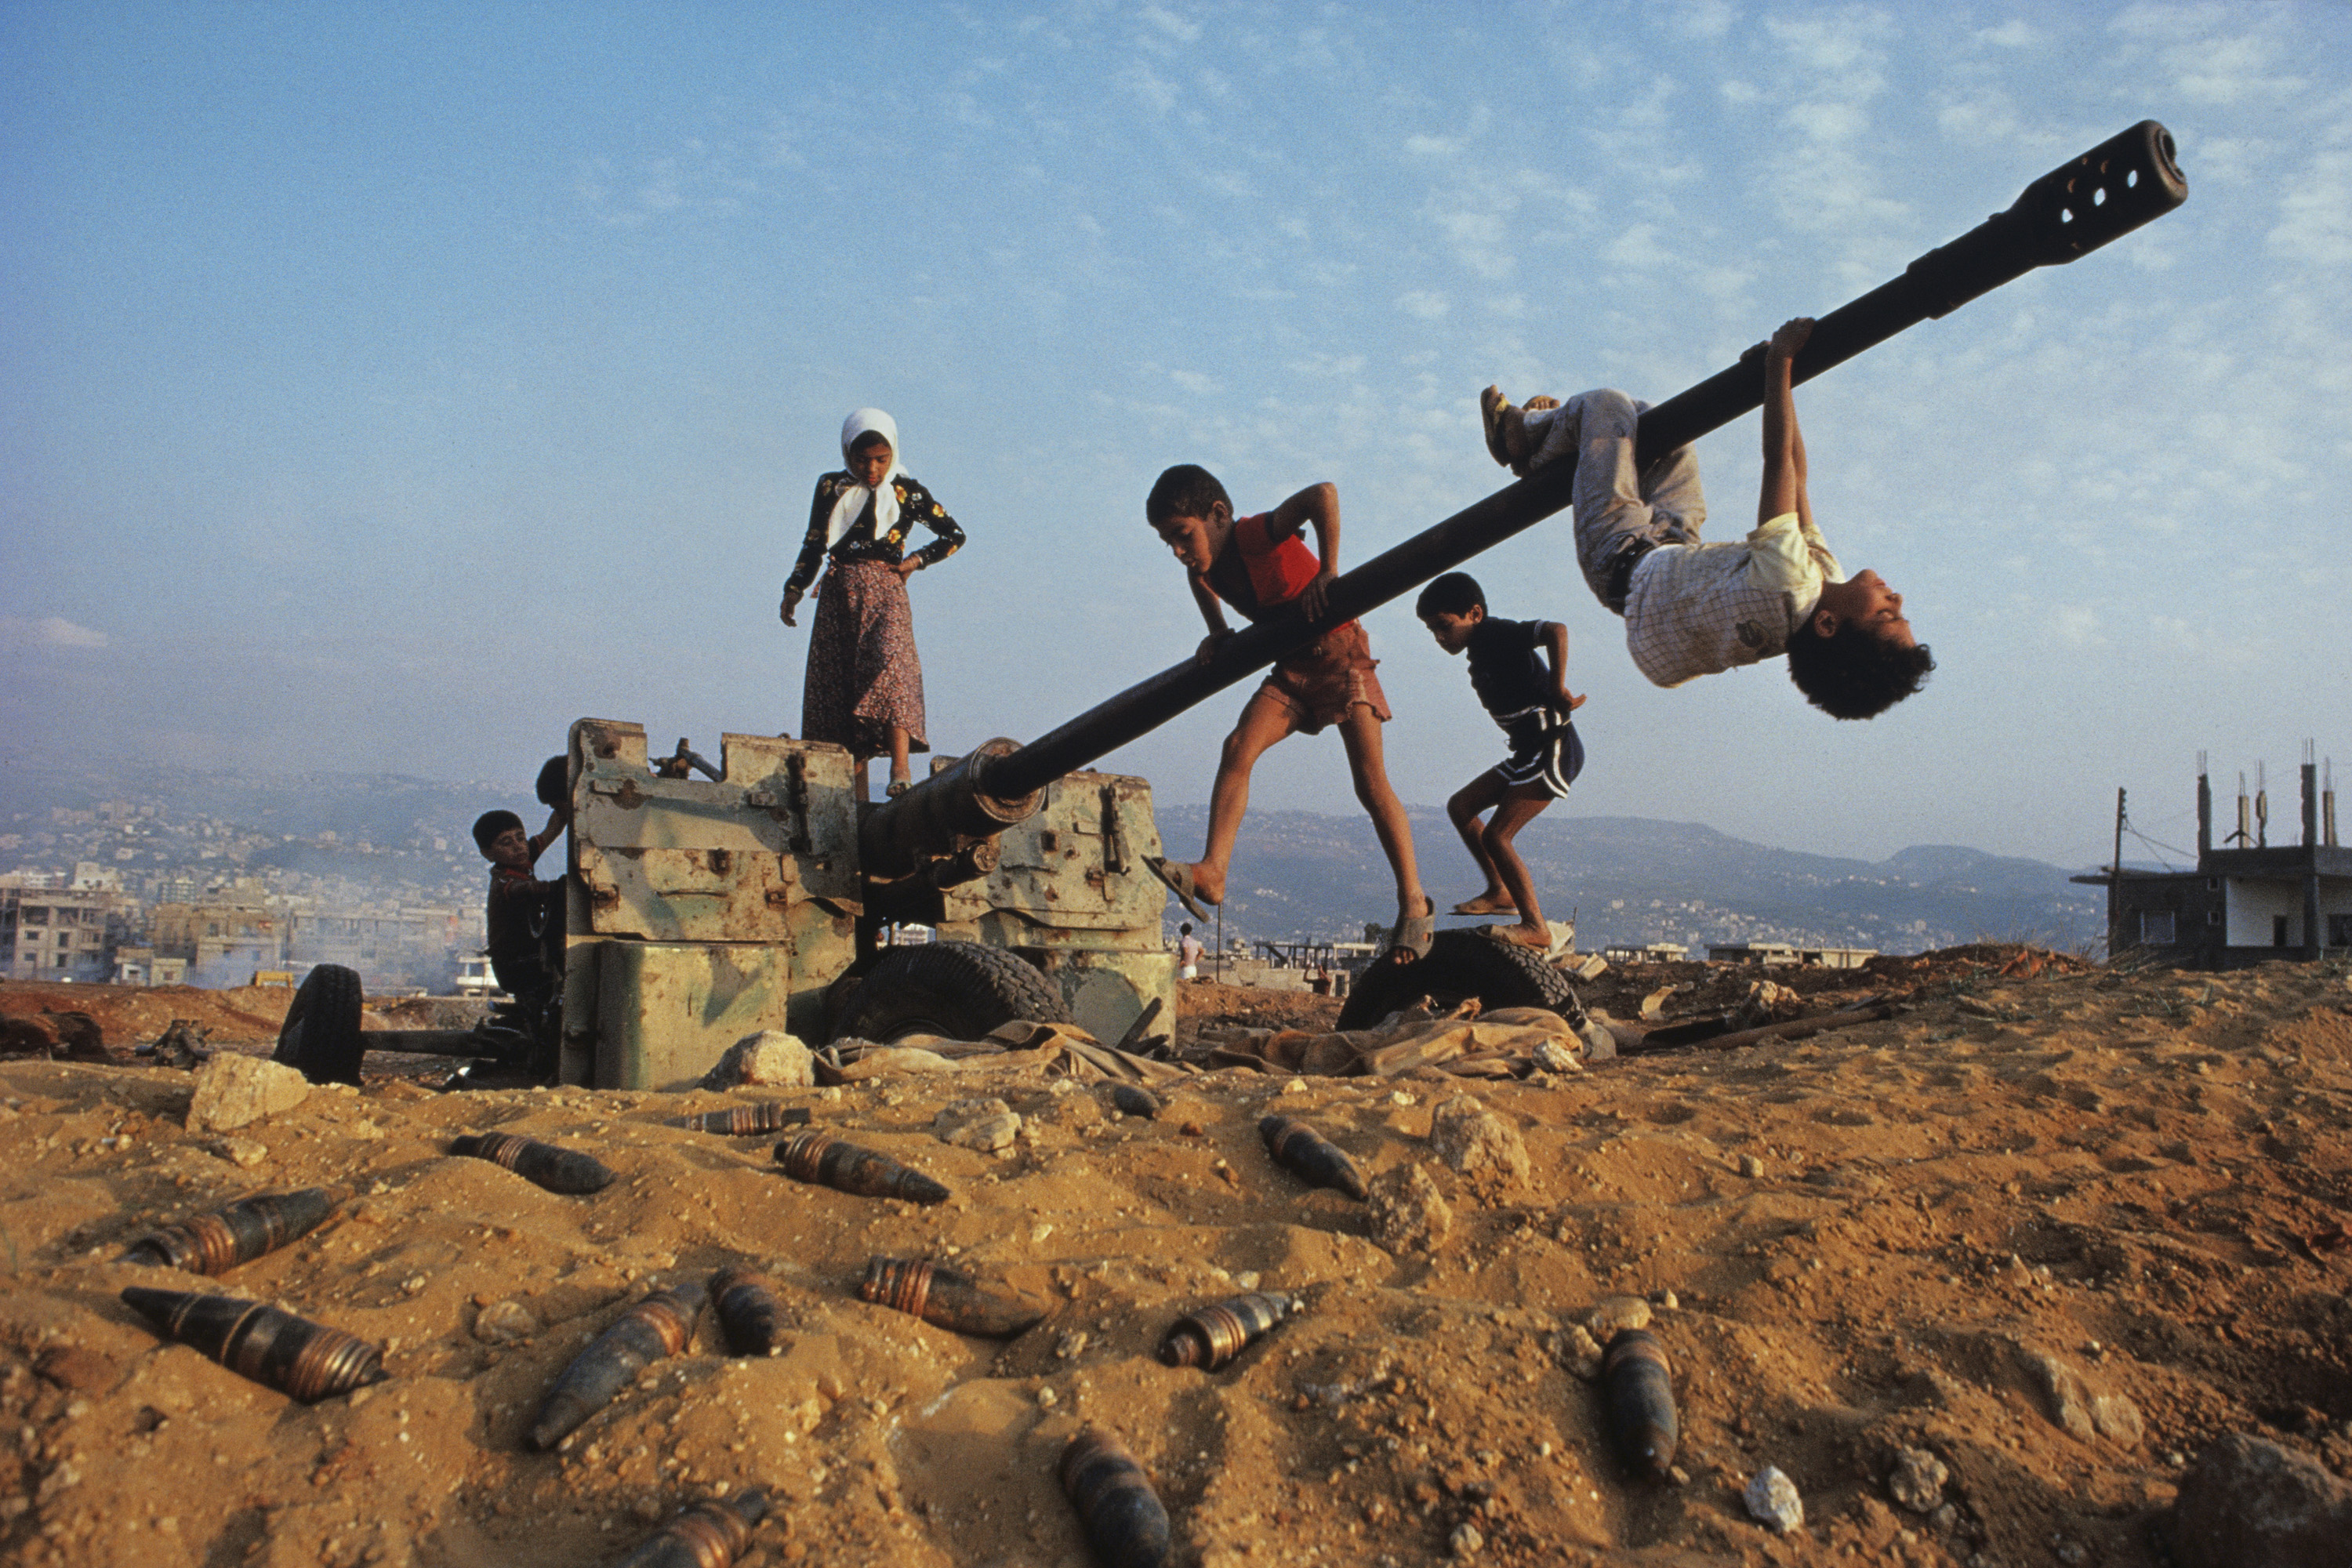 Fun and Games | Steve McCurry's Blog